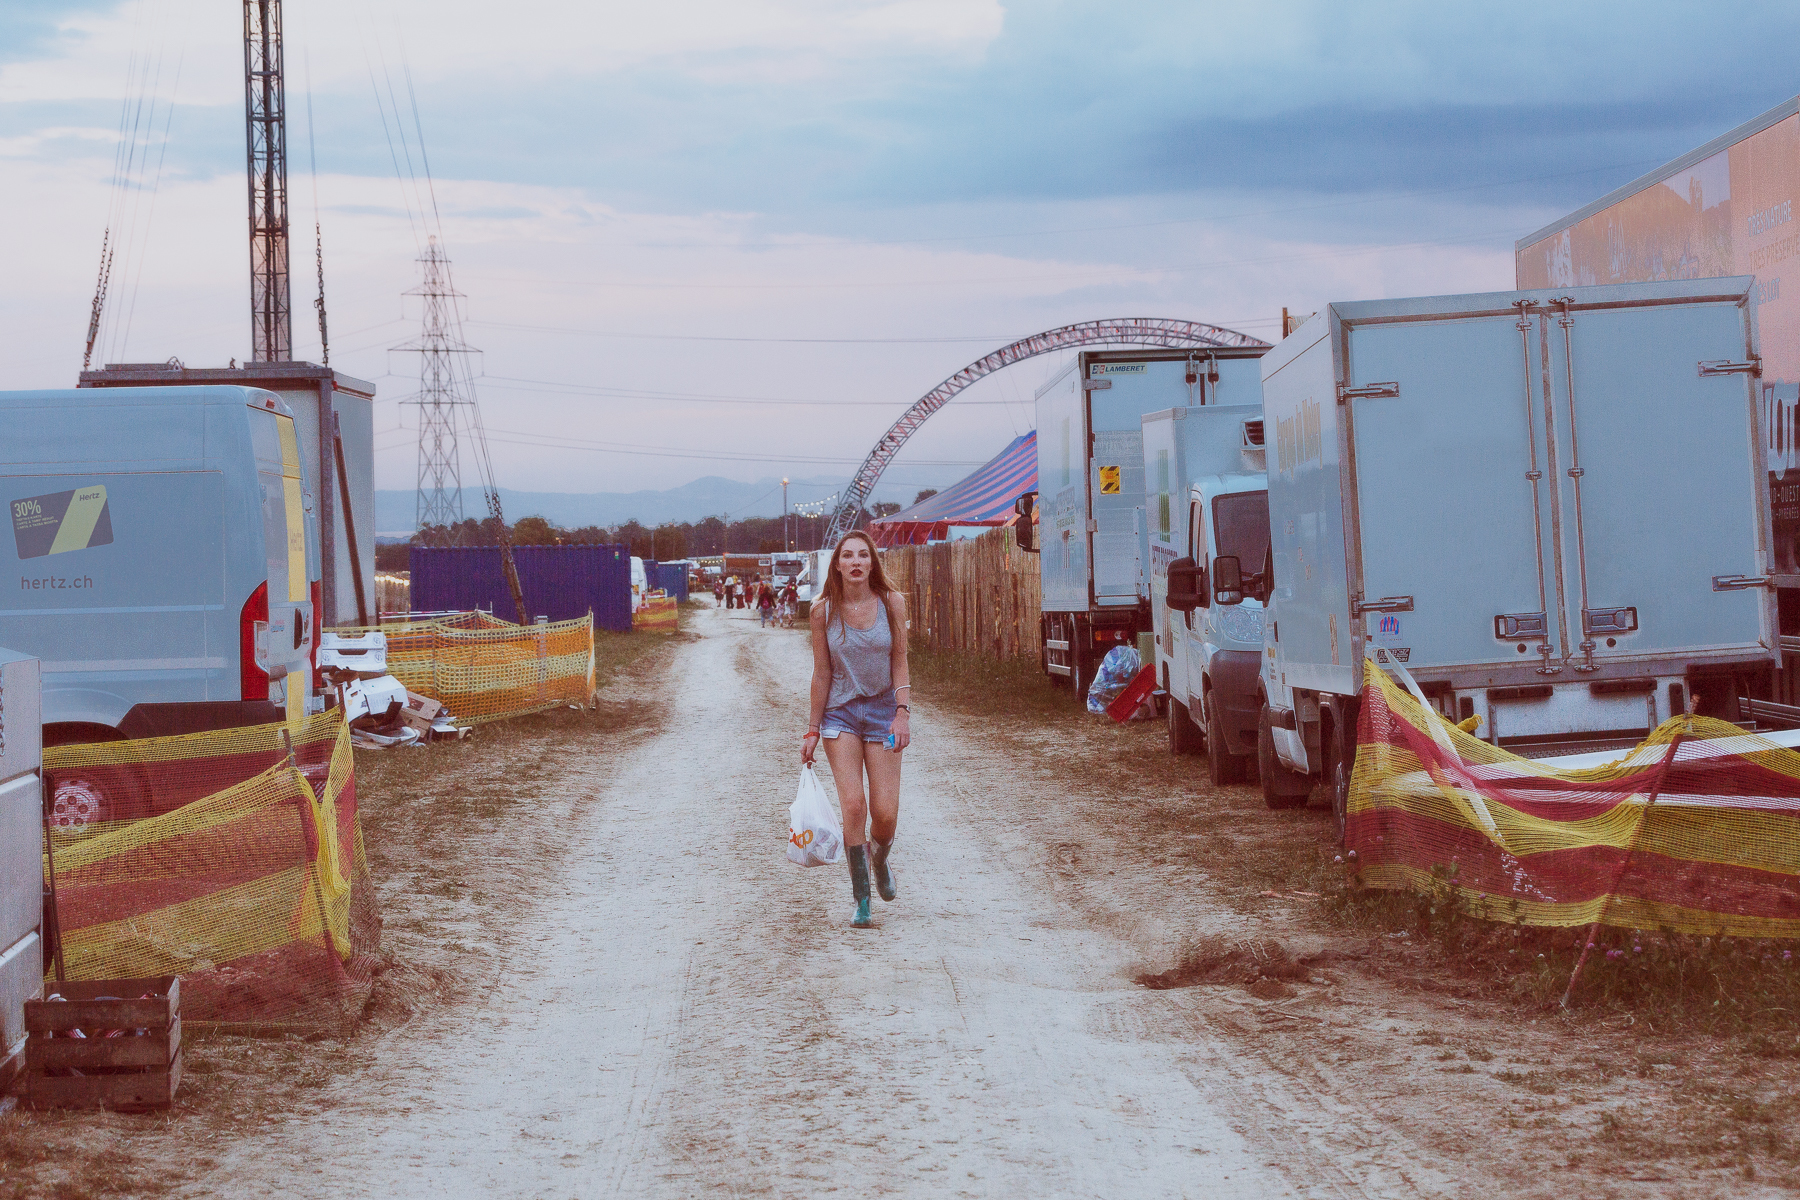 Paléo festival 2016. A girl walks on the dustroad behind the foodstands.